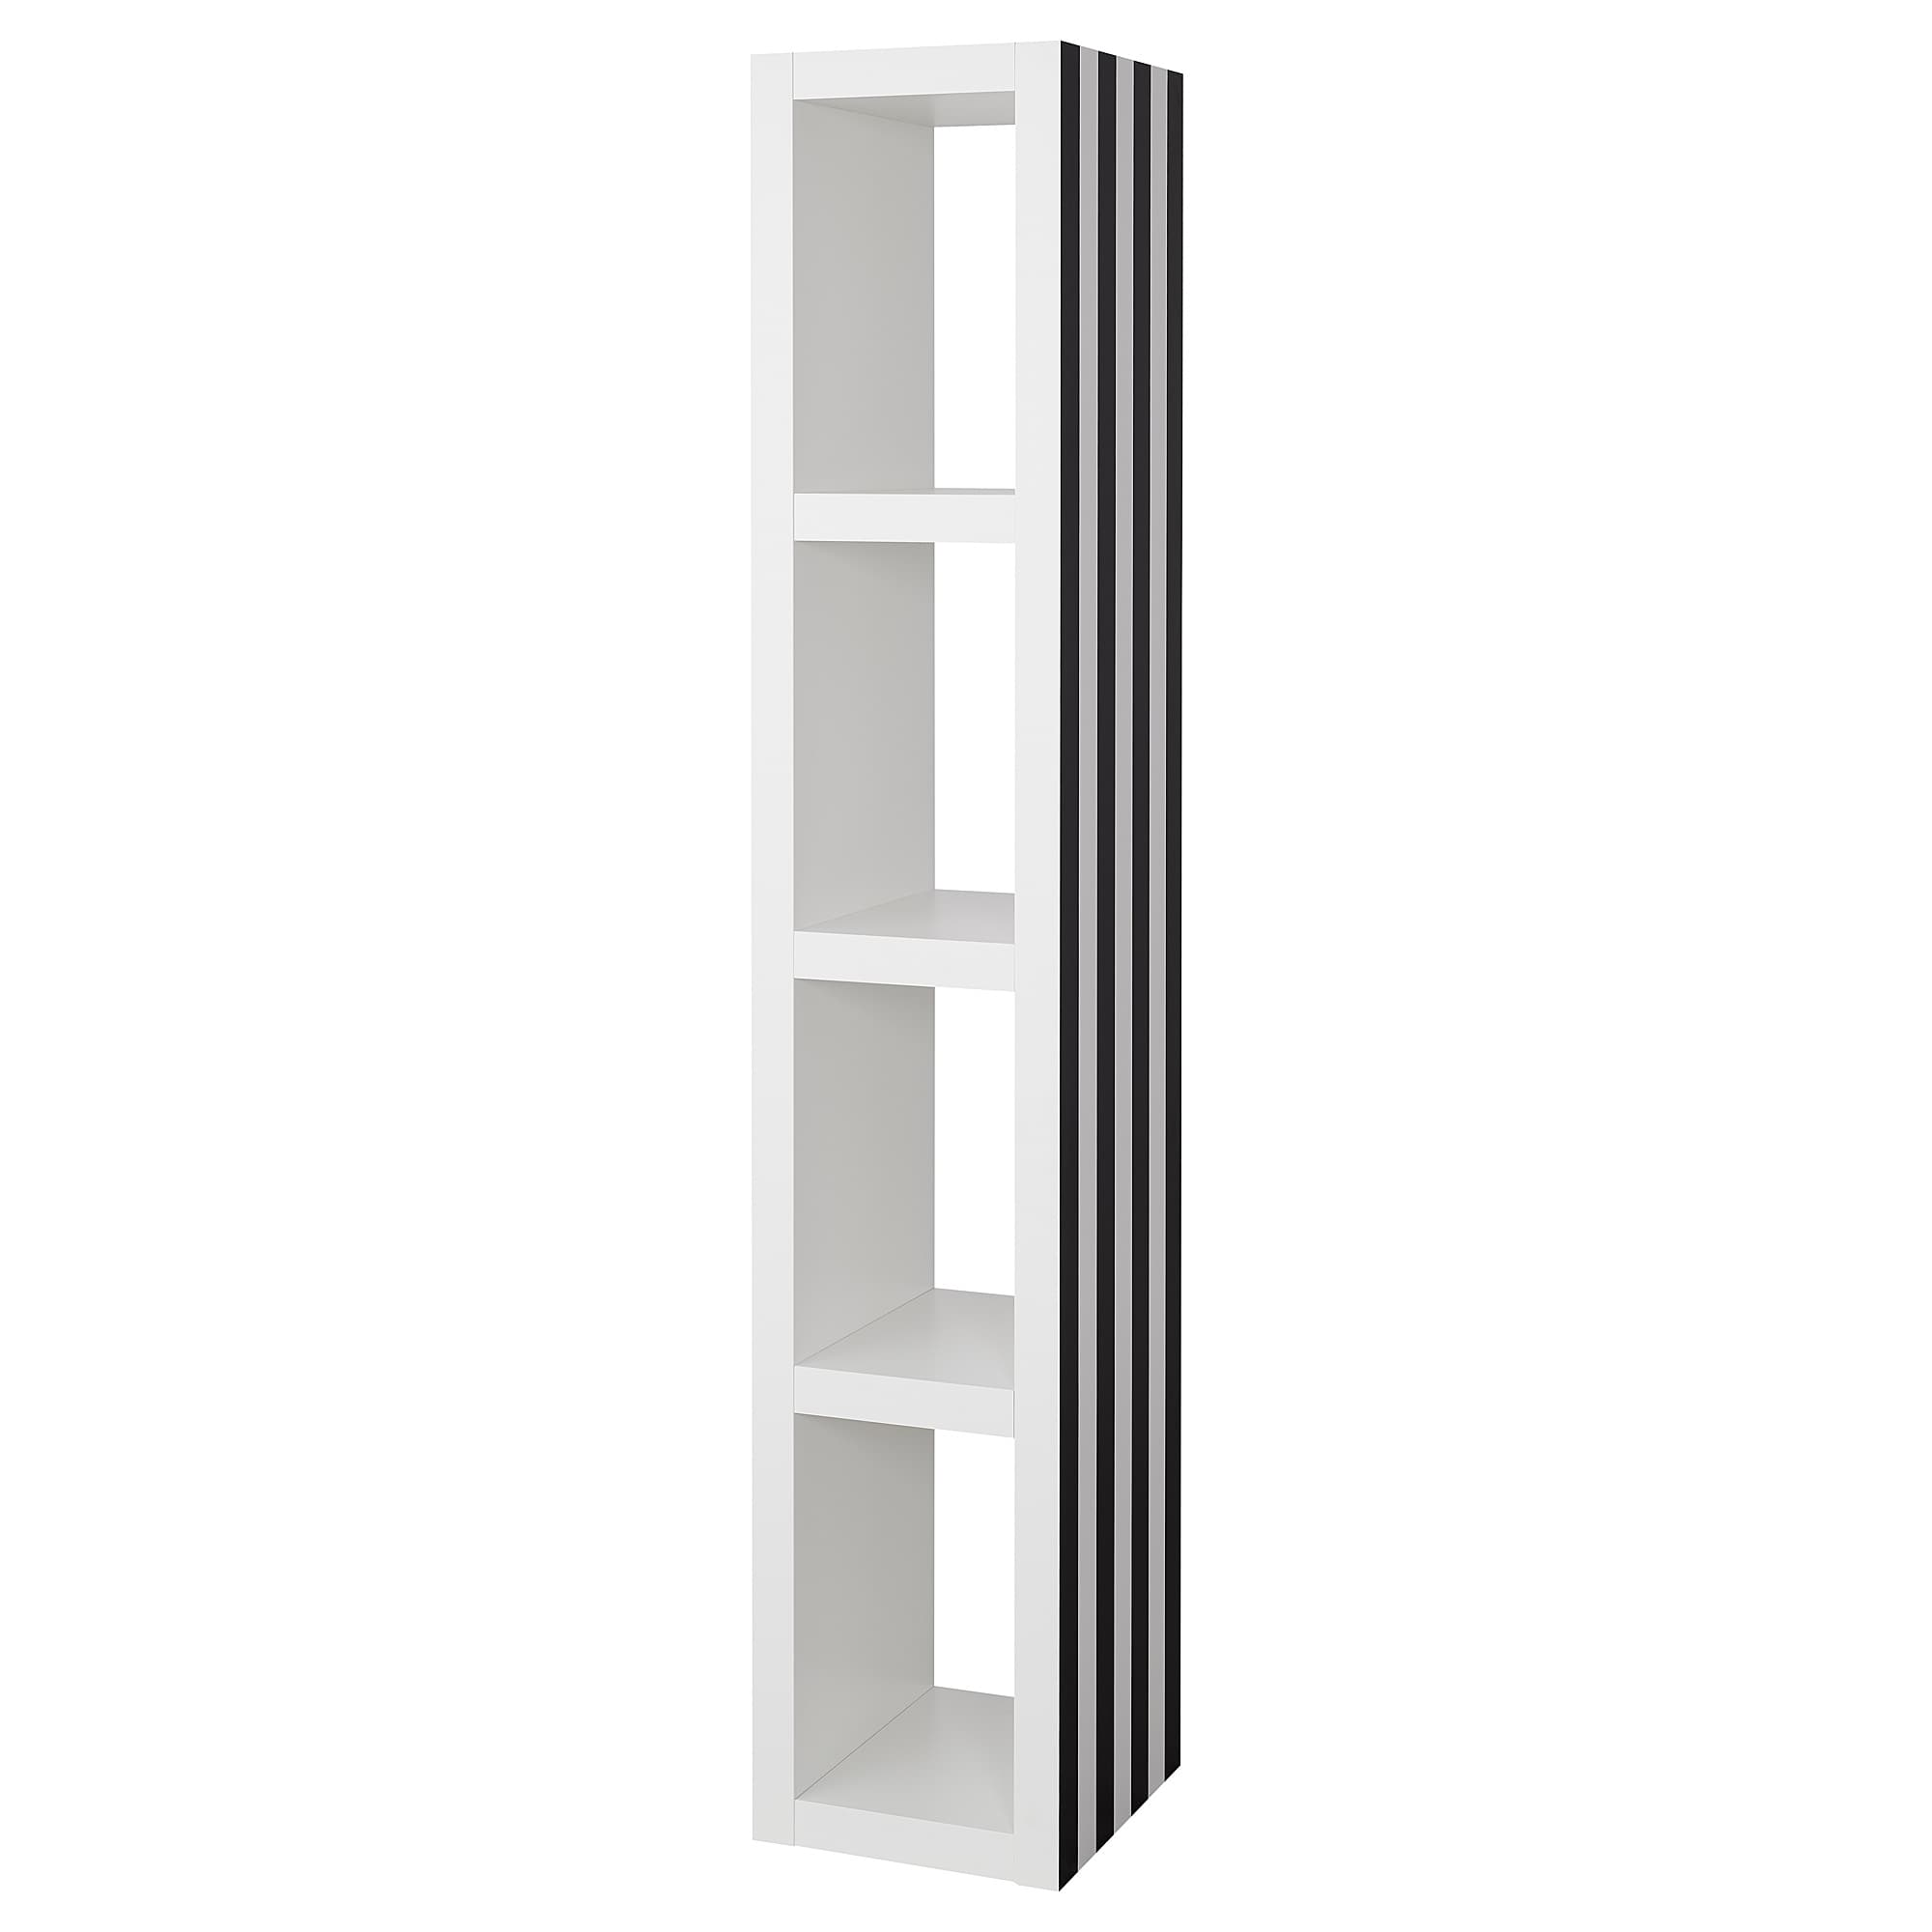 complete shelves ikea lack shelving unit black white floating cube can also hung wall mini bar cabinet low wide long thin shelf pottery barn holman installation instalay underlay